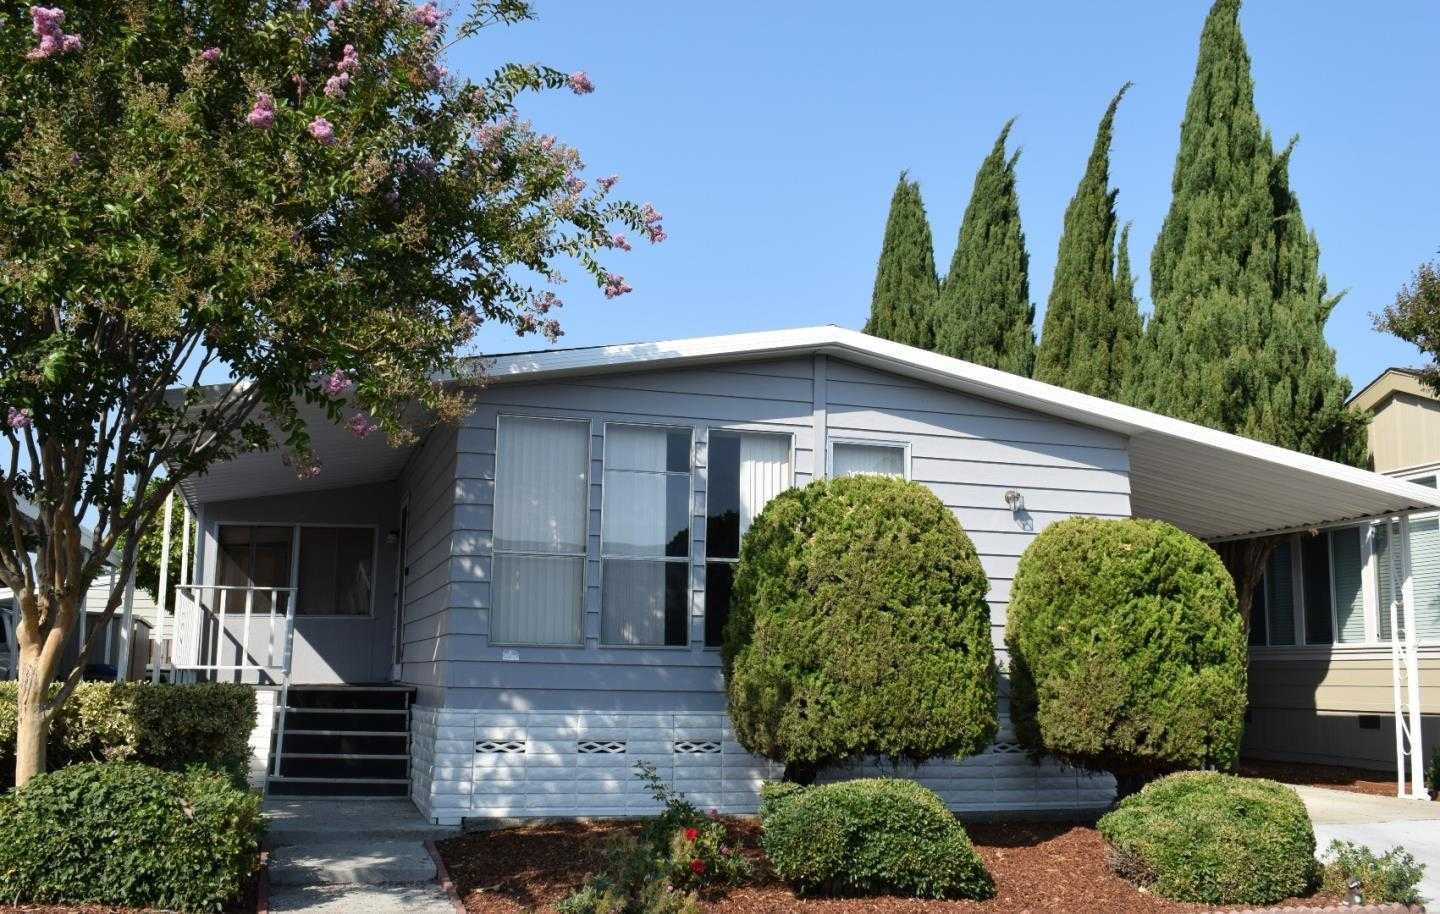 $169,000 - 2Br/2Ba -  for Sale in Sunnyvale